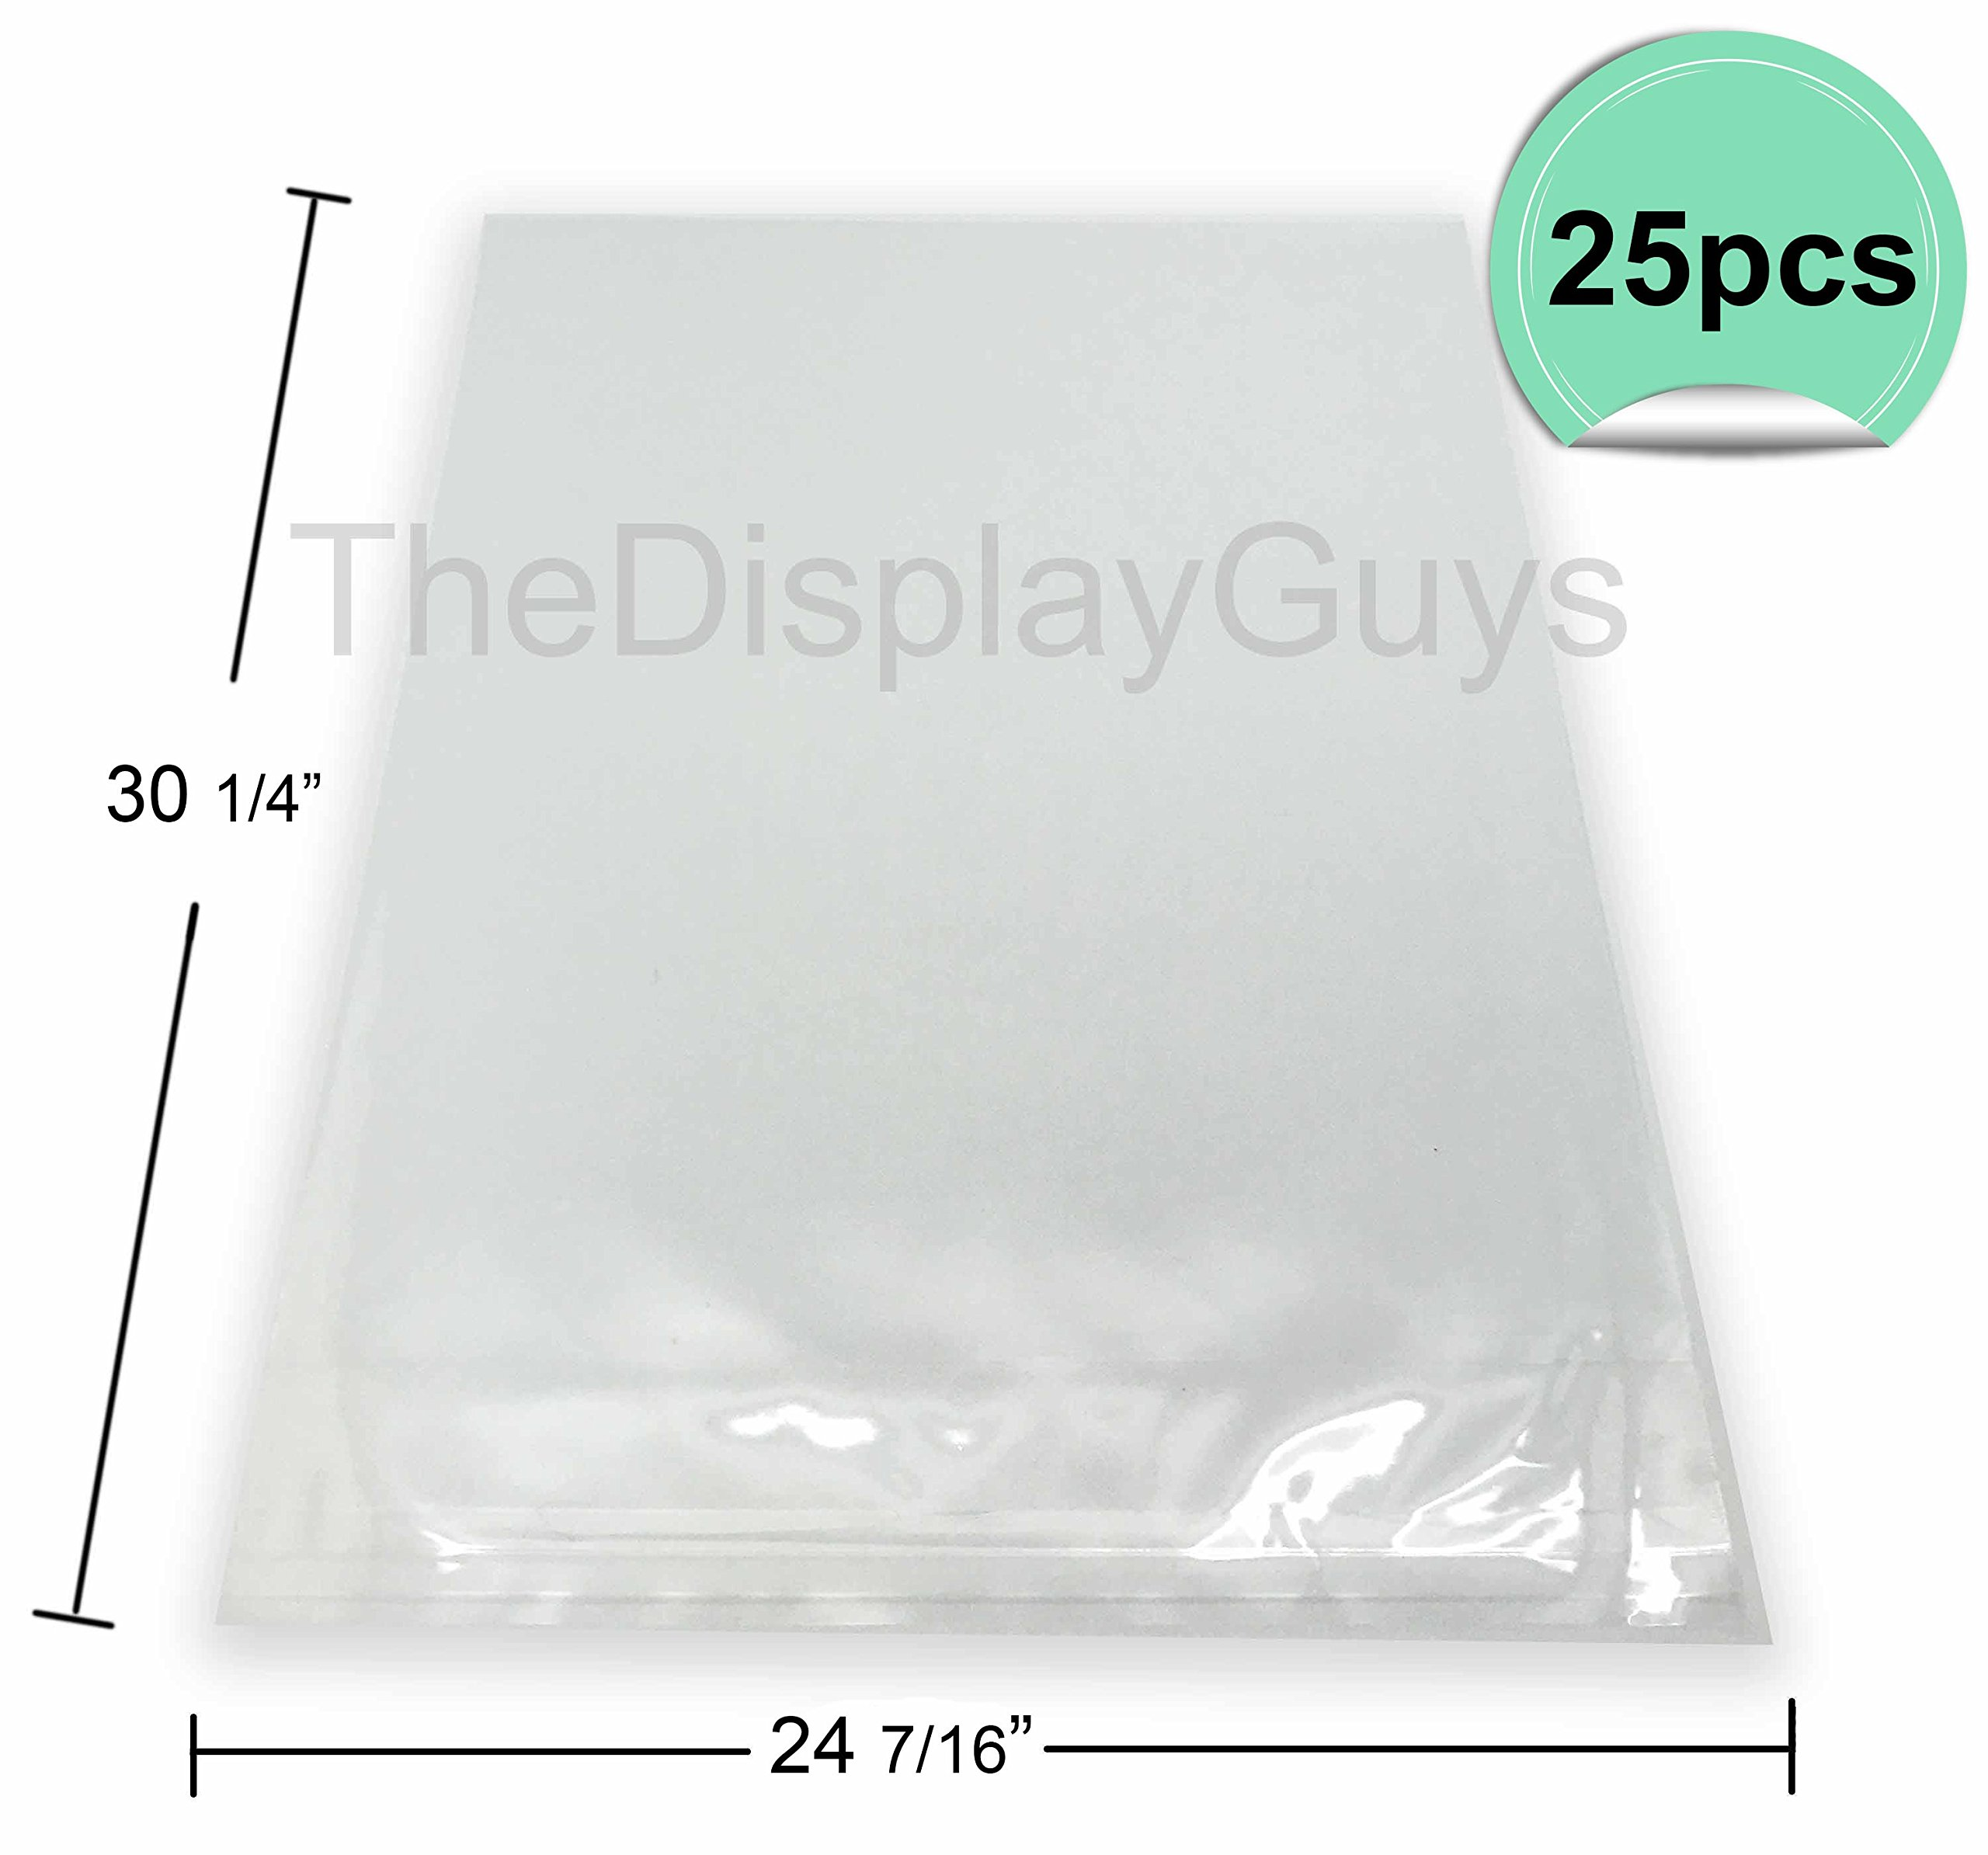 The Display Guys, 25 Pcs 24 7/16'' x 30 1/4'' Clear Self Adhesive Plastic Bags for 24x30 inches Picture, Poster, Photo Framing Mats